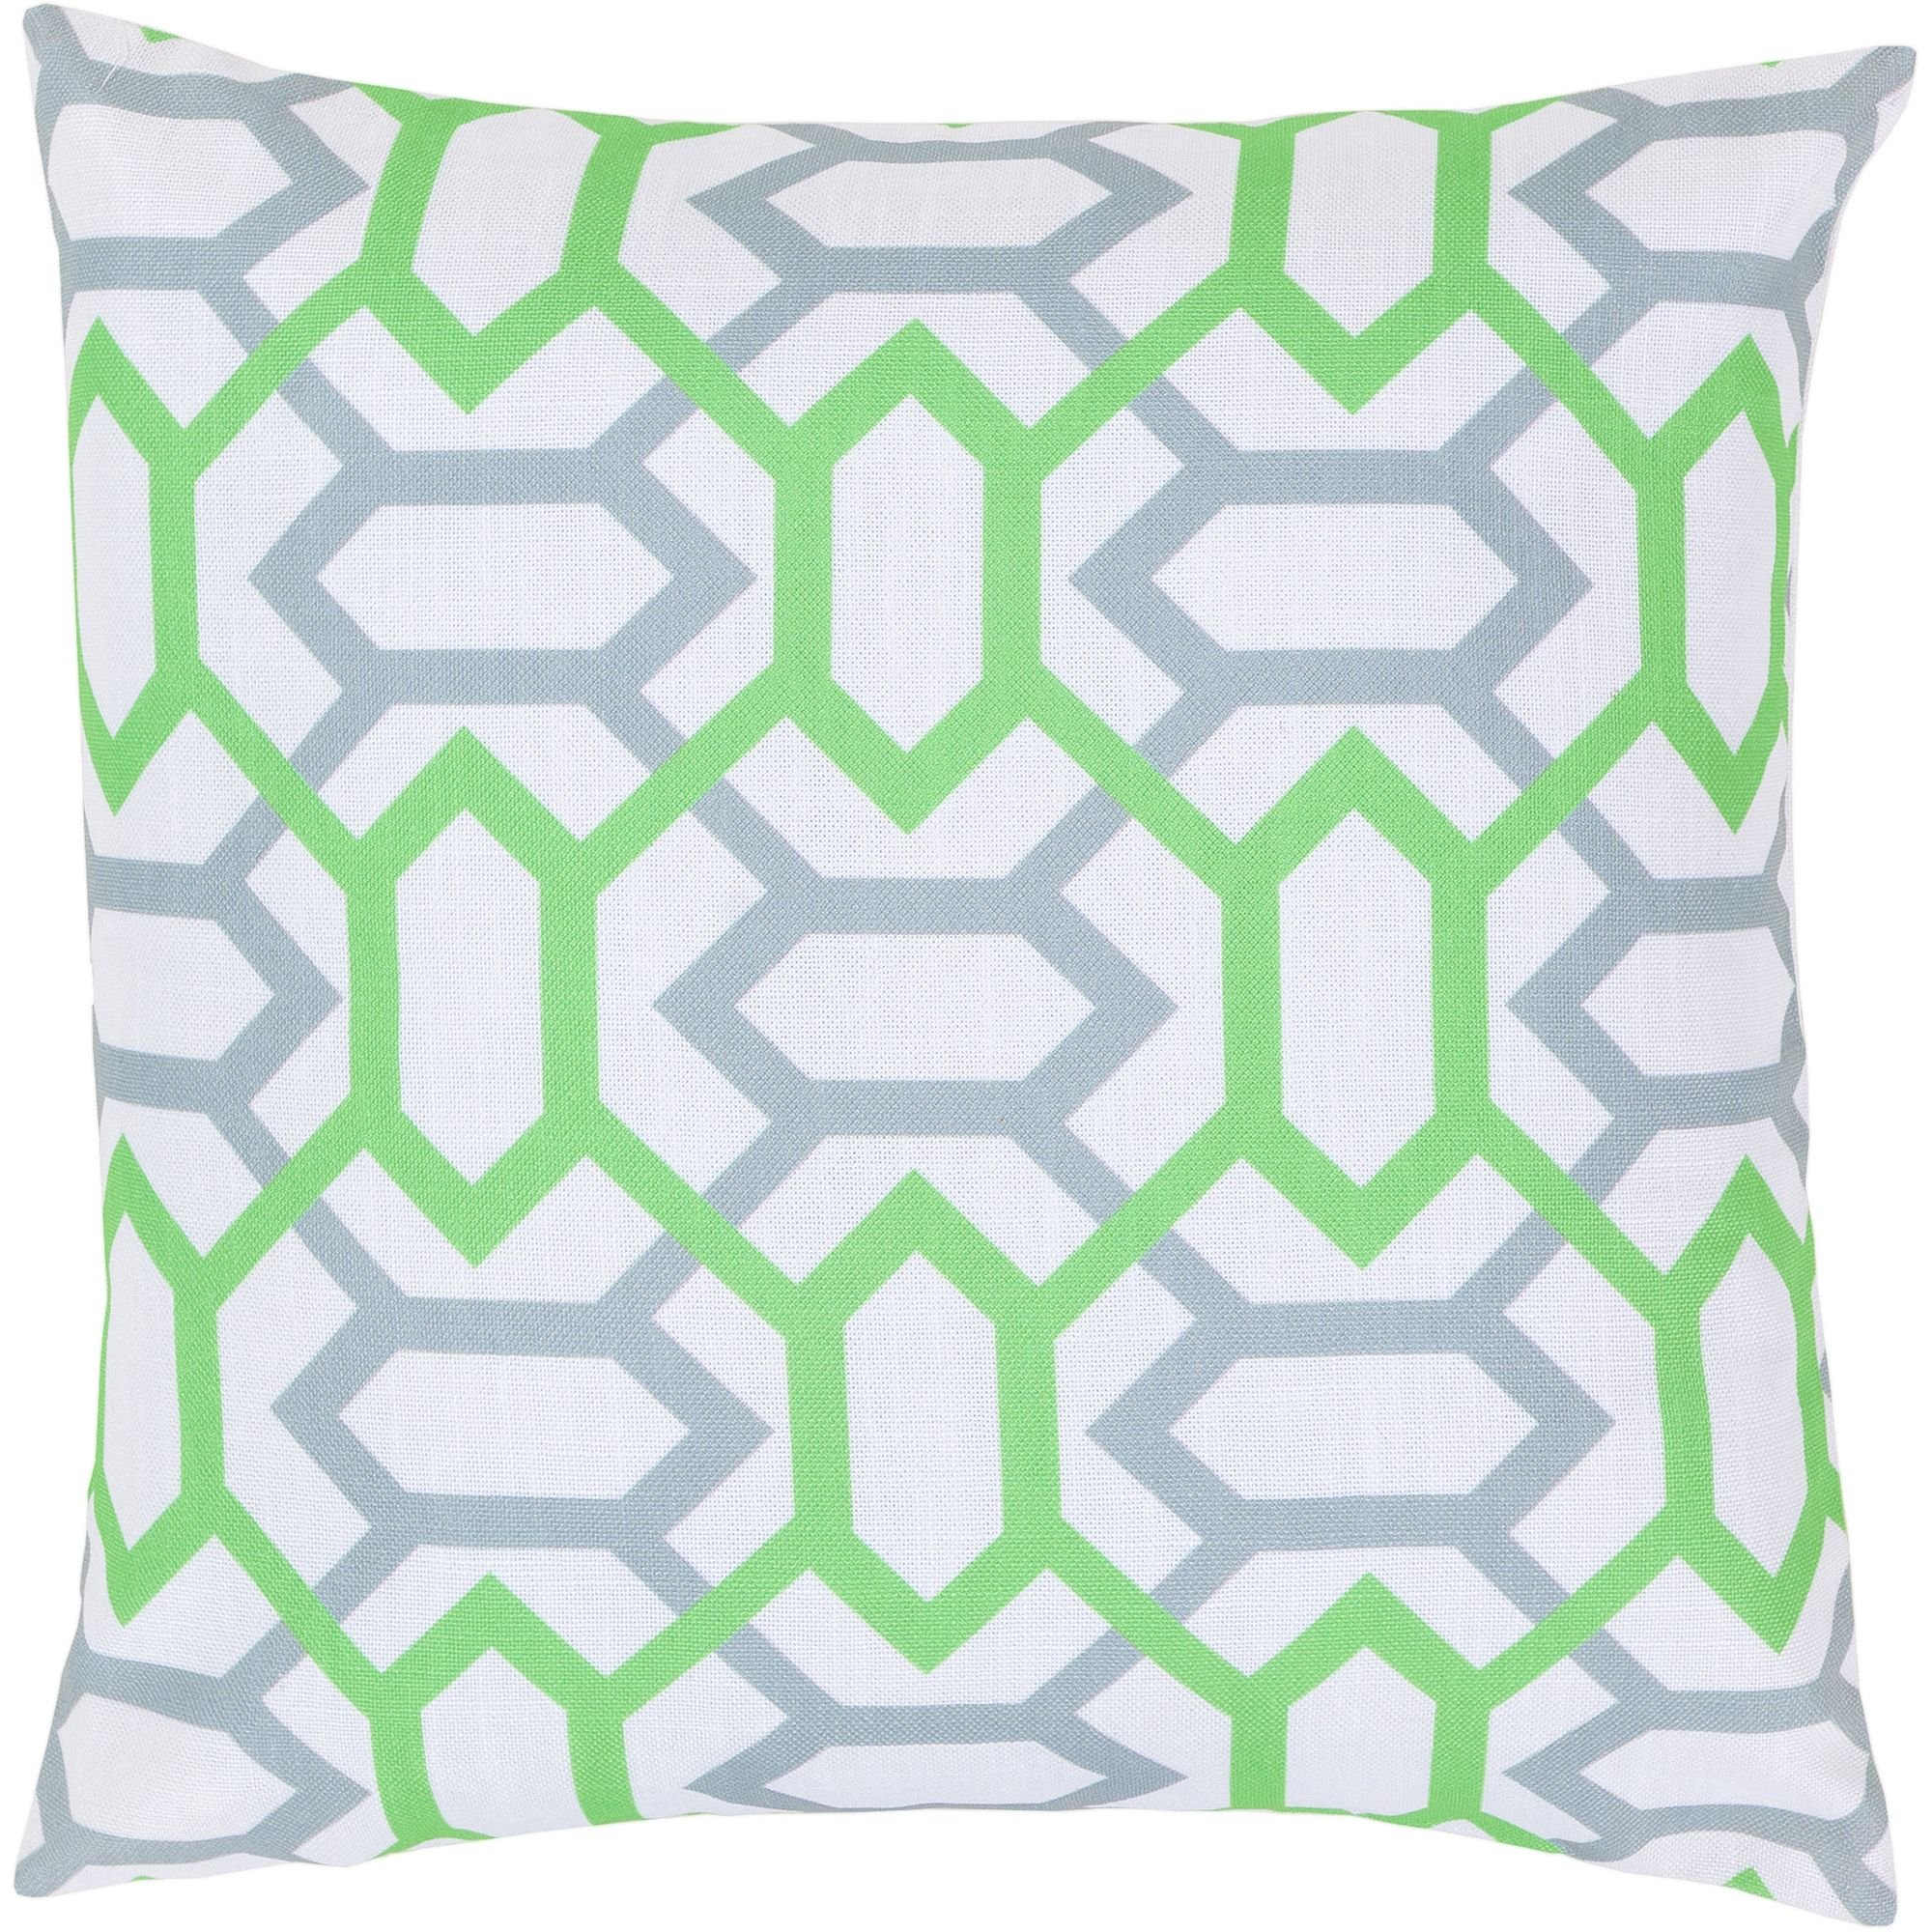 Art of Knot Carlisle Hand Crafted Gateway Pattern Decorative Pillow with Poly Filler, Gray